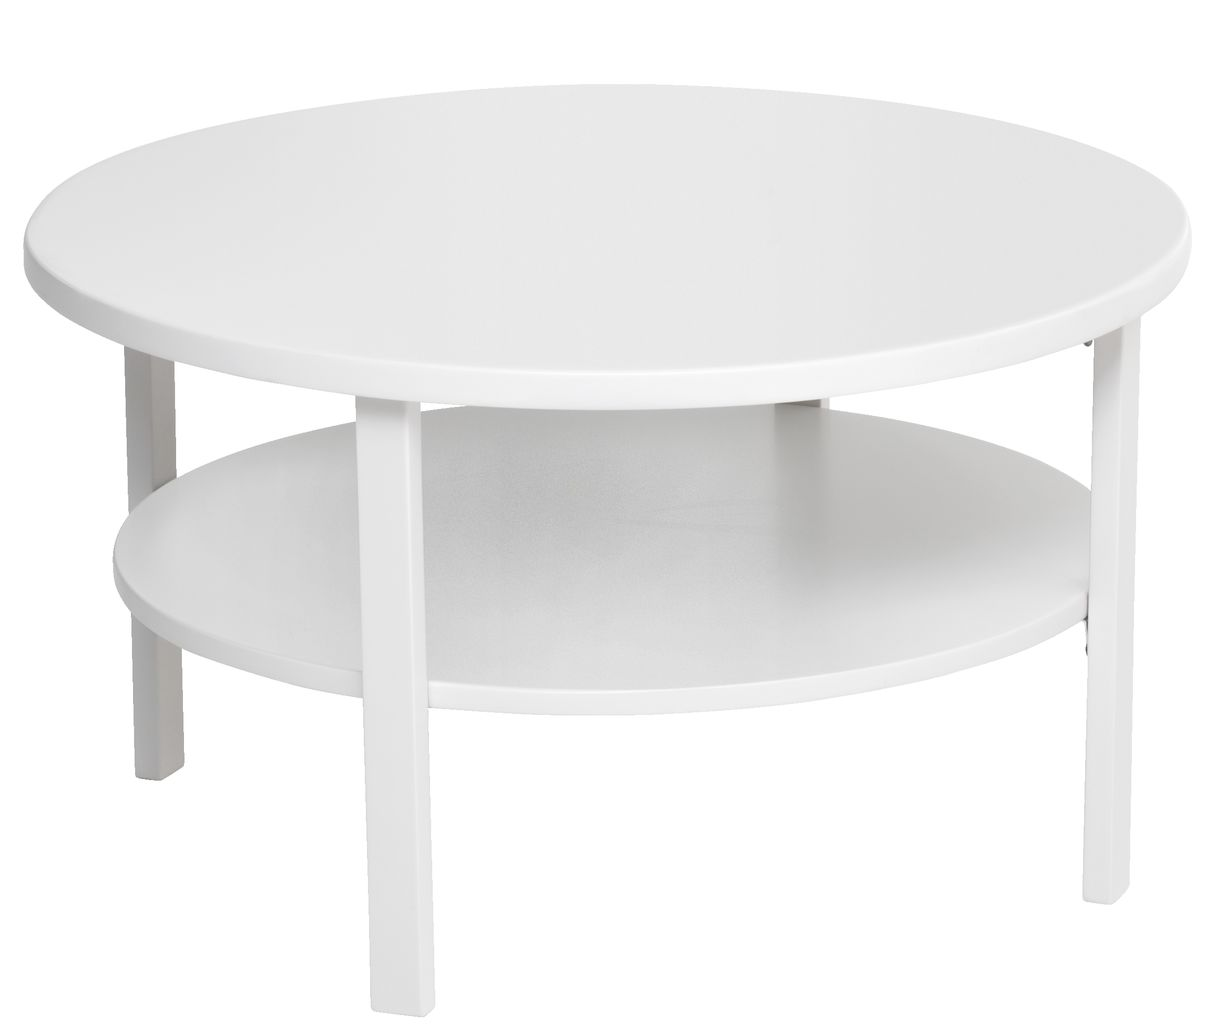 Coffee table SKIBBY D80 wshelf white  JYSK